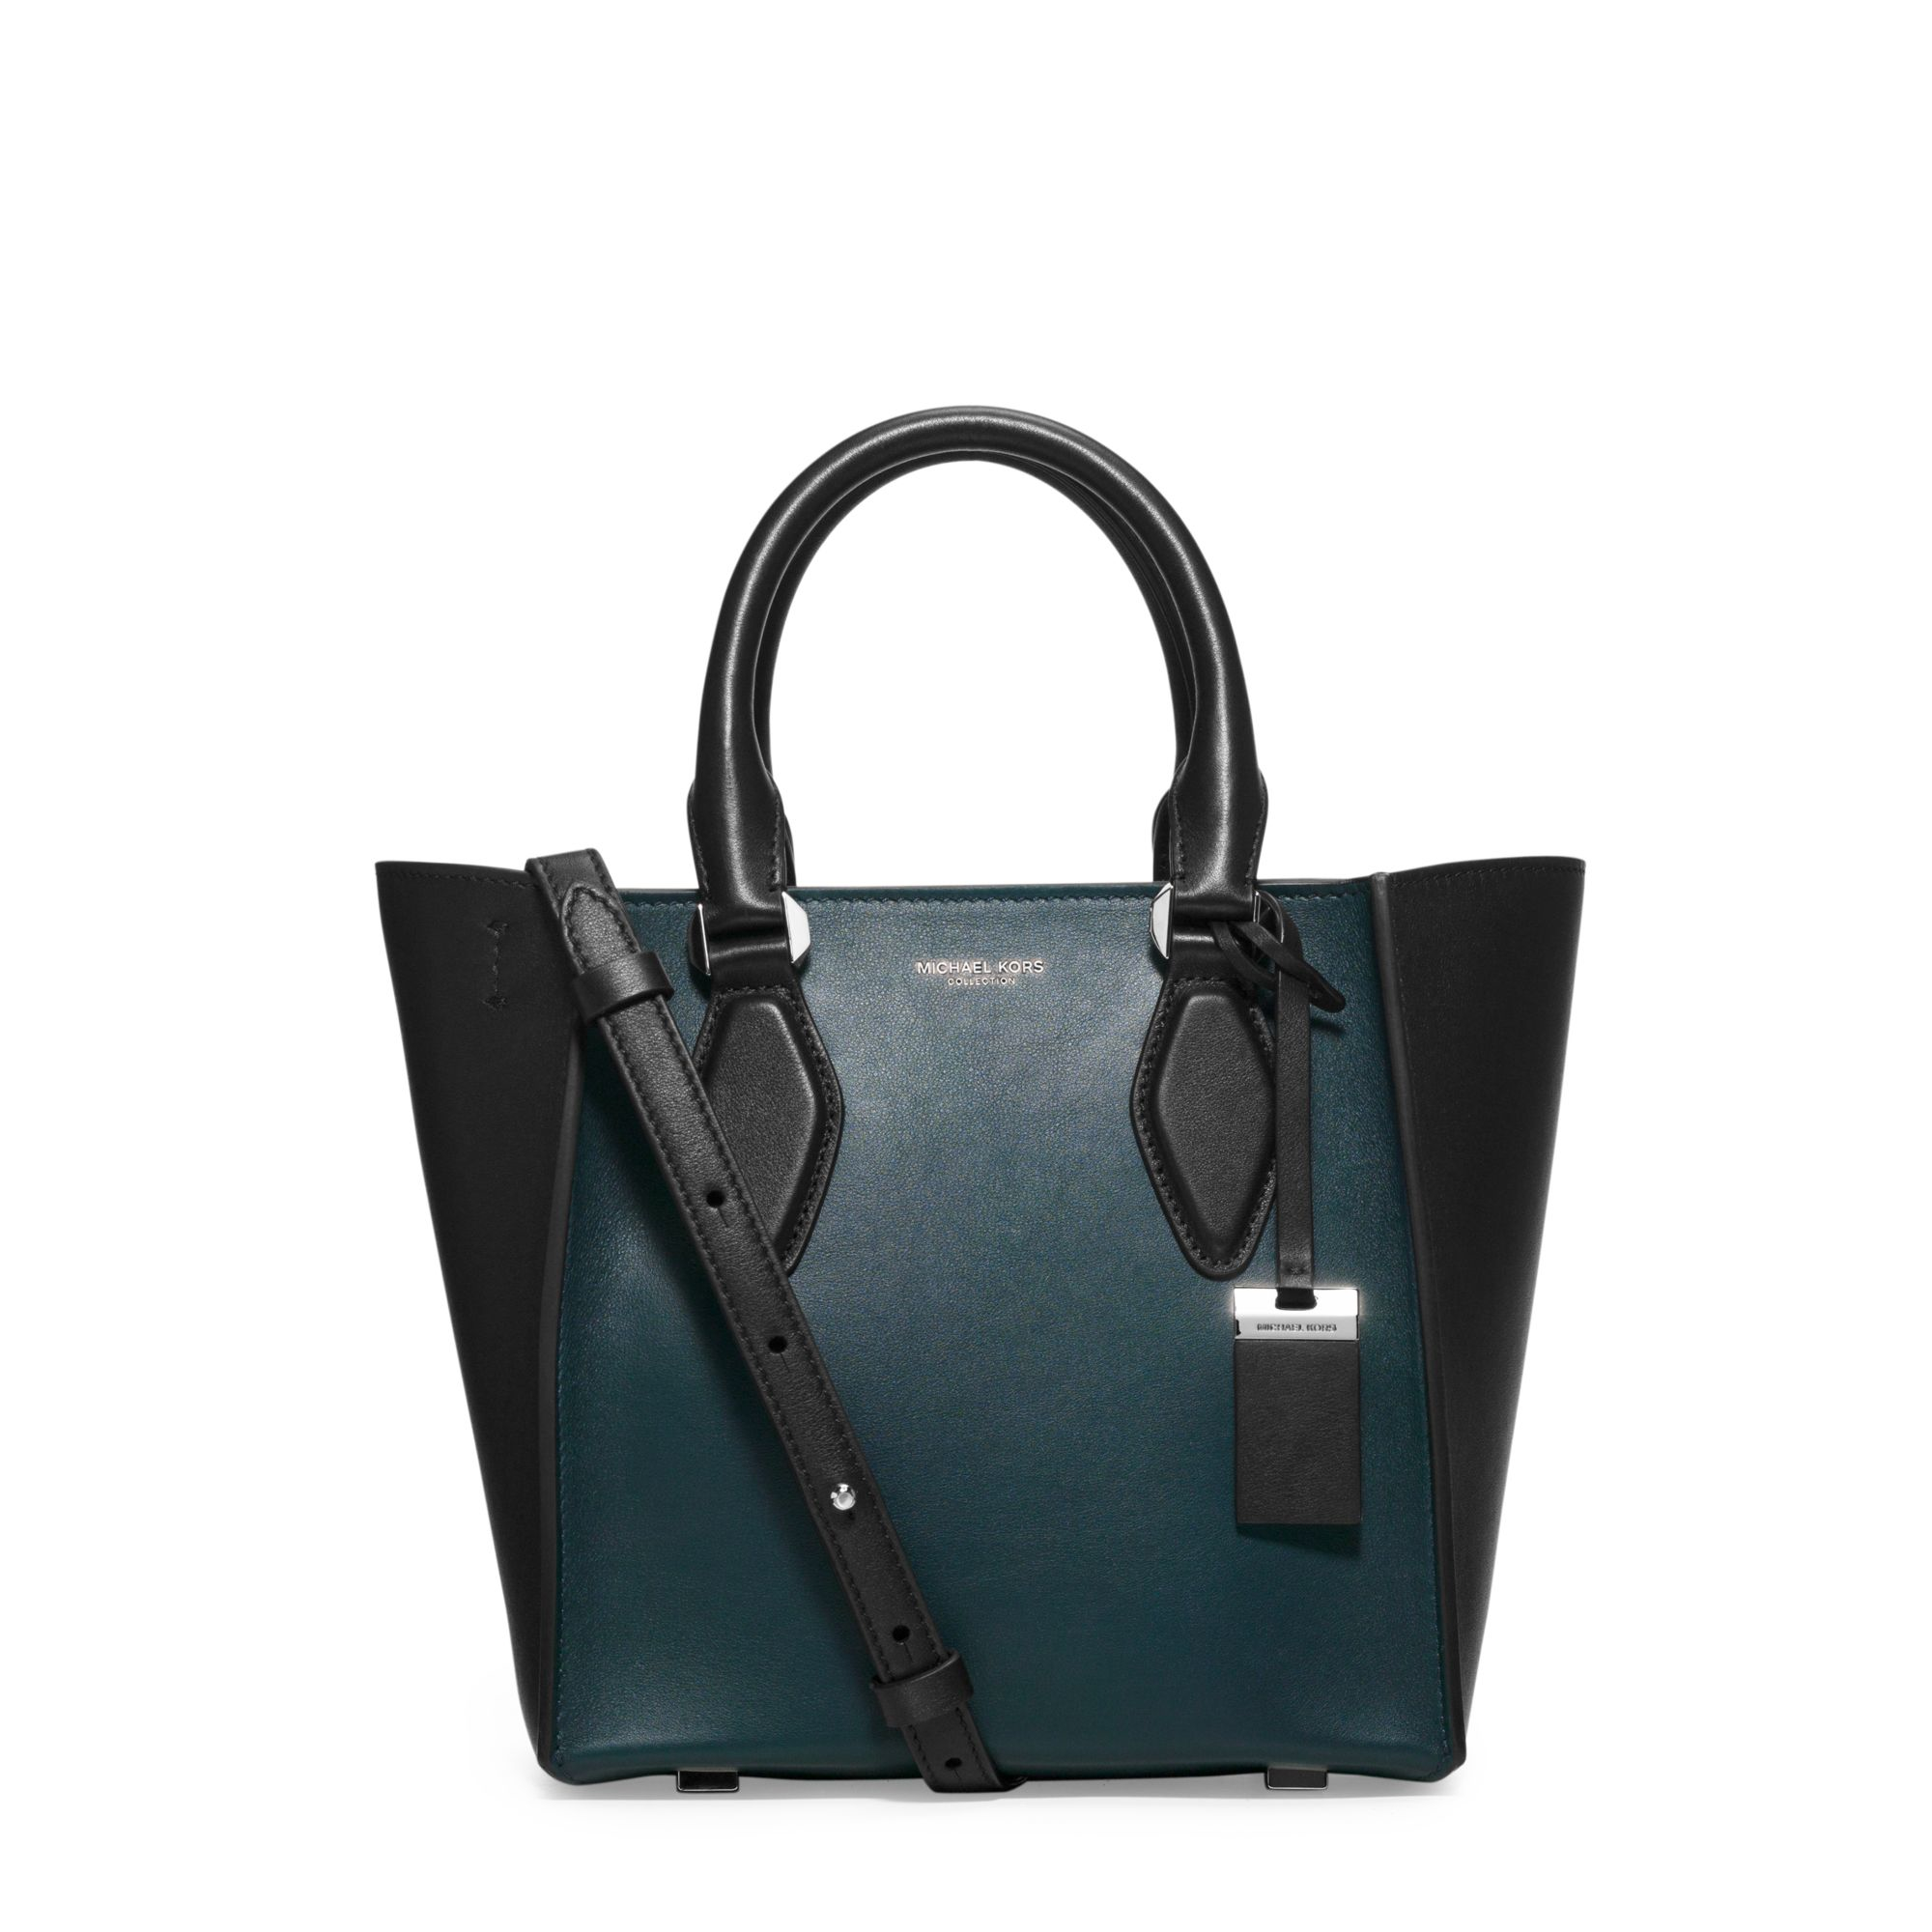 3082b9799f60 Michael Kors Gracie Small Two-tone Leather Tote in Blue - Lyst